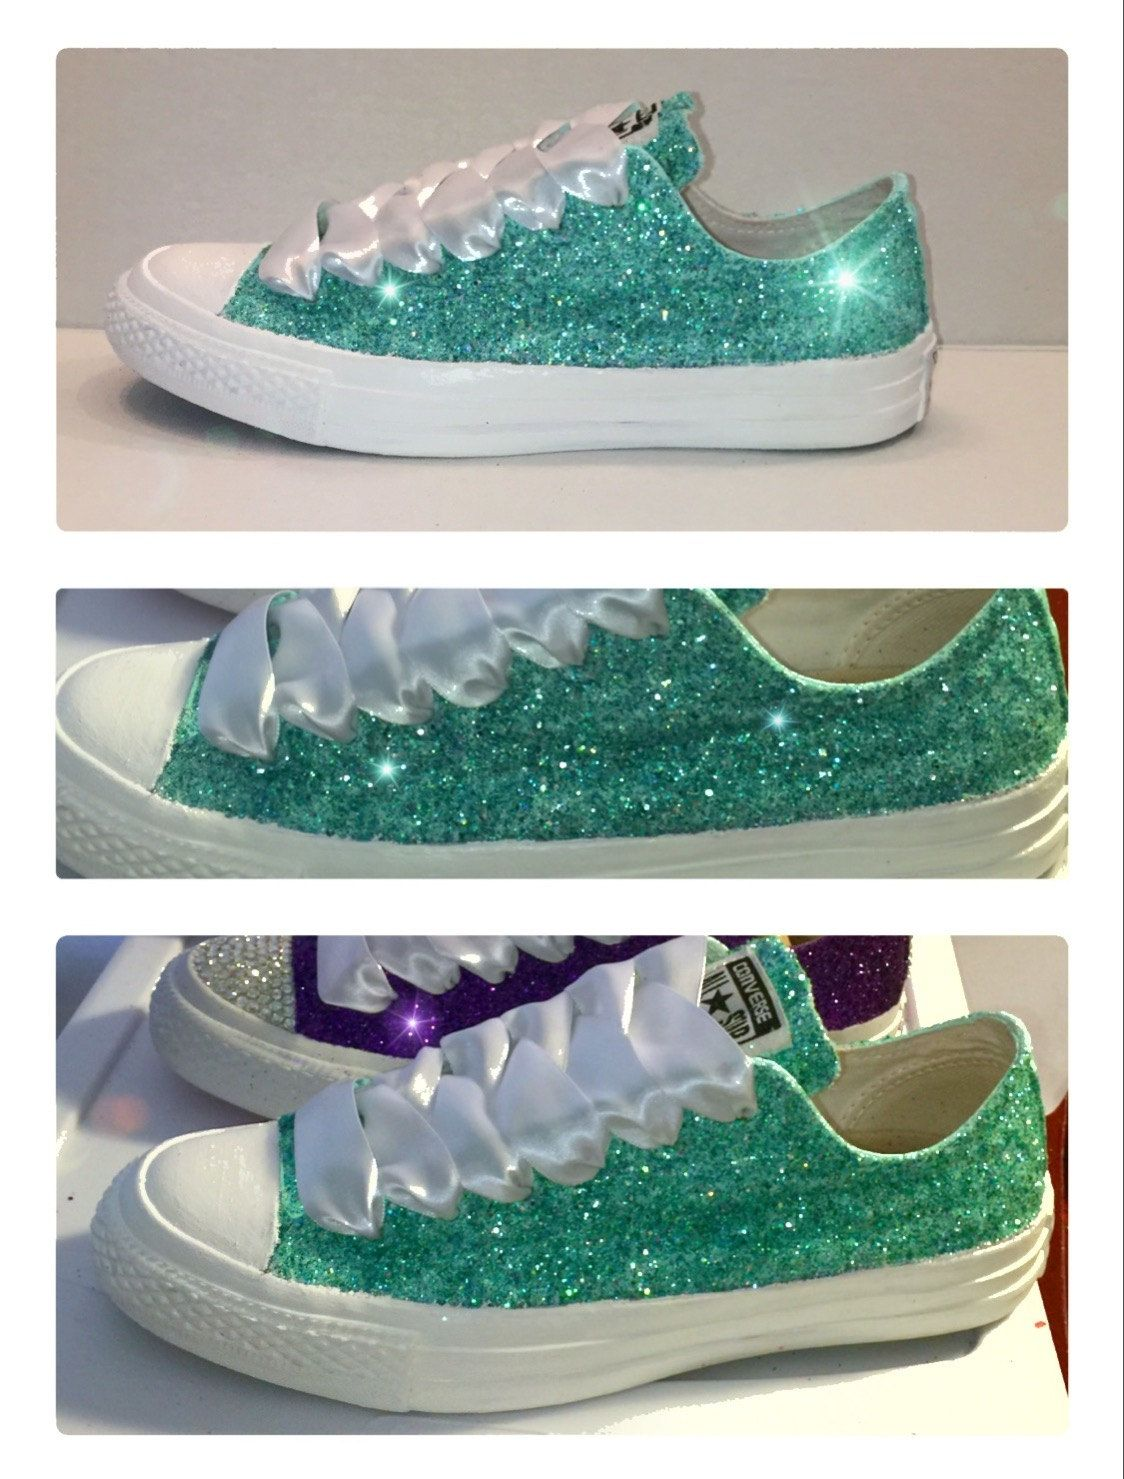 s converse all shoes handmade sparkly glitter